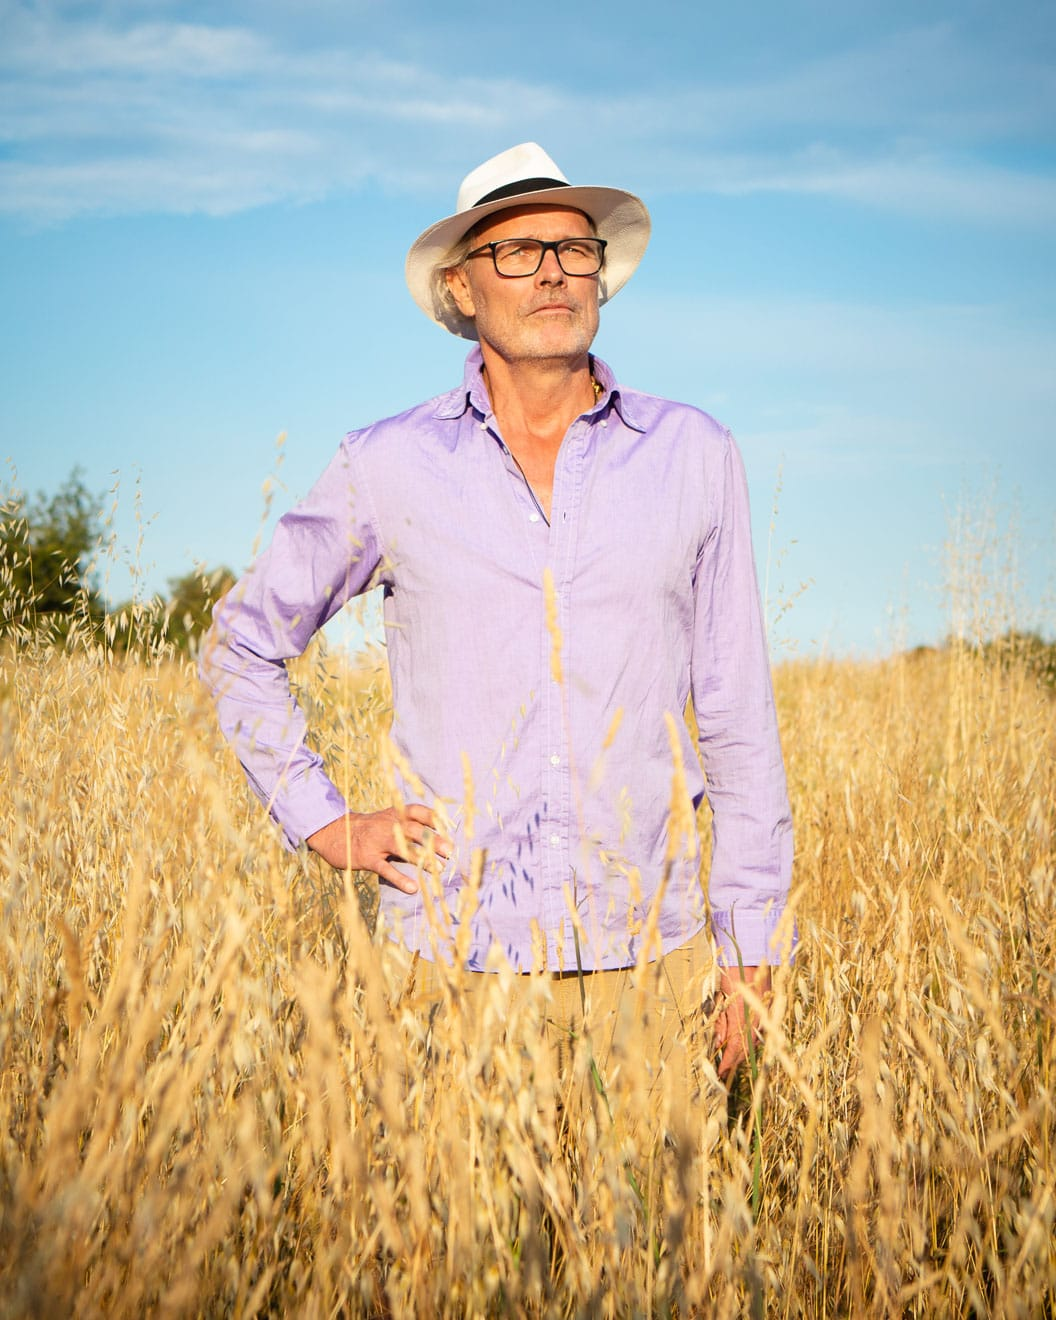 Photographic portrait of a man standing in a cornfield in a white hat